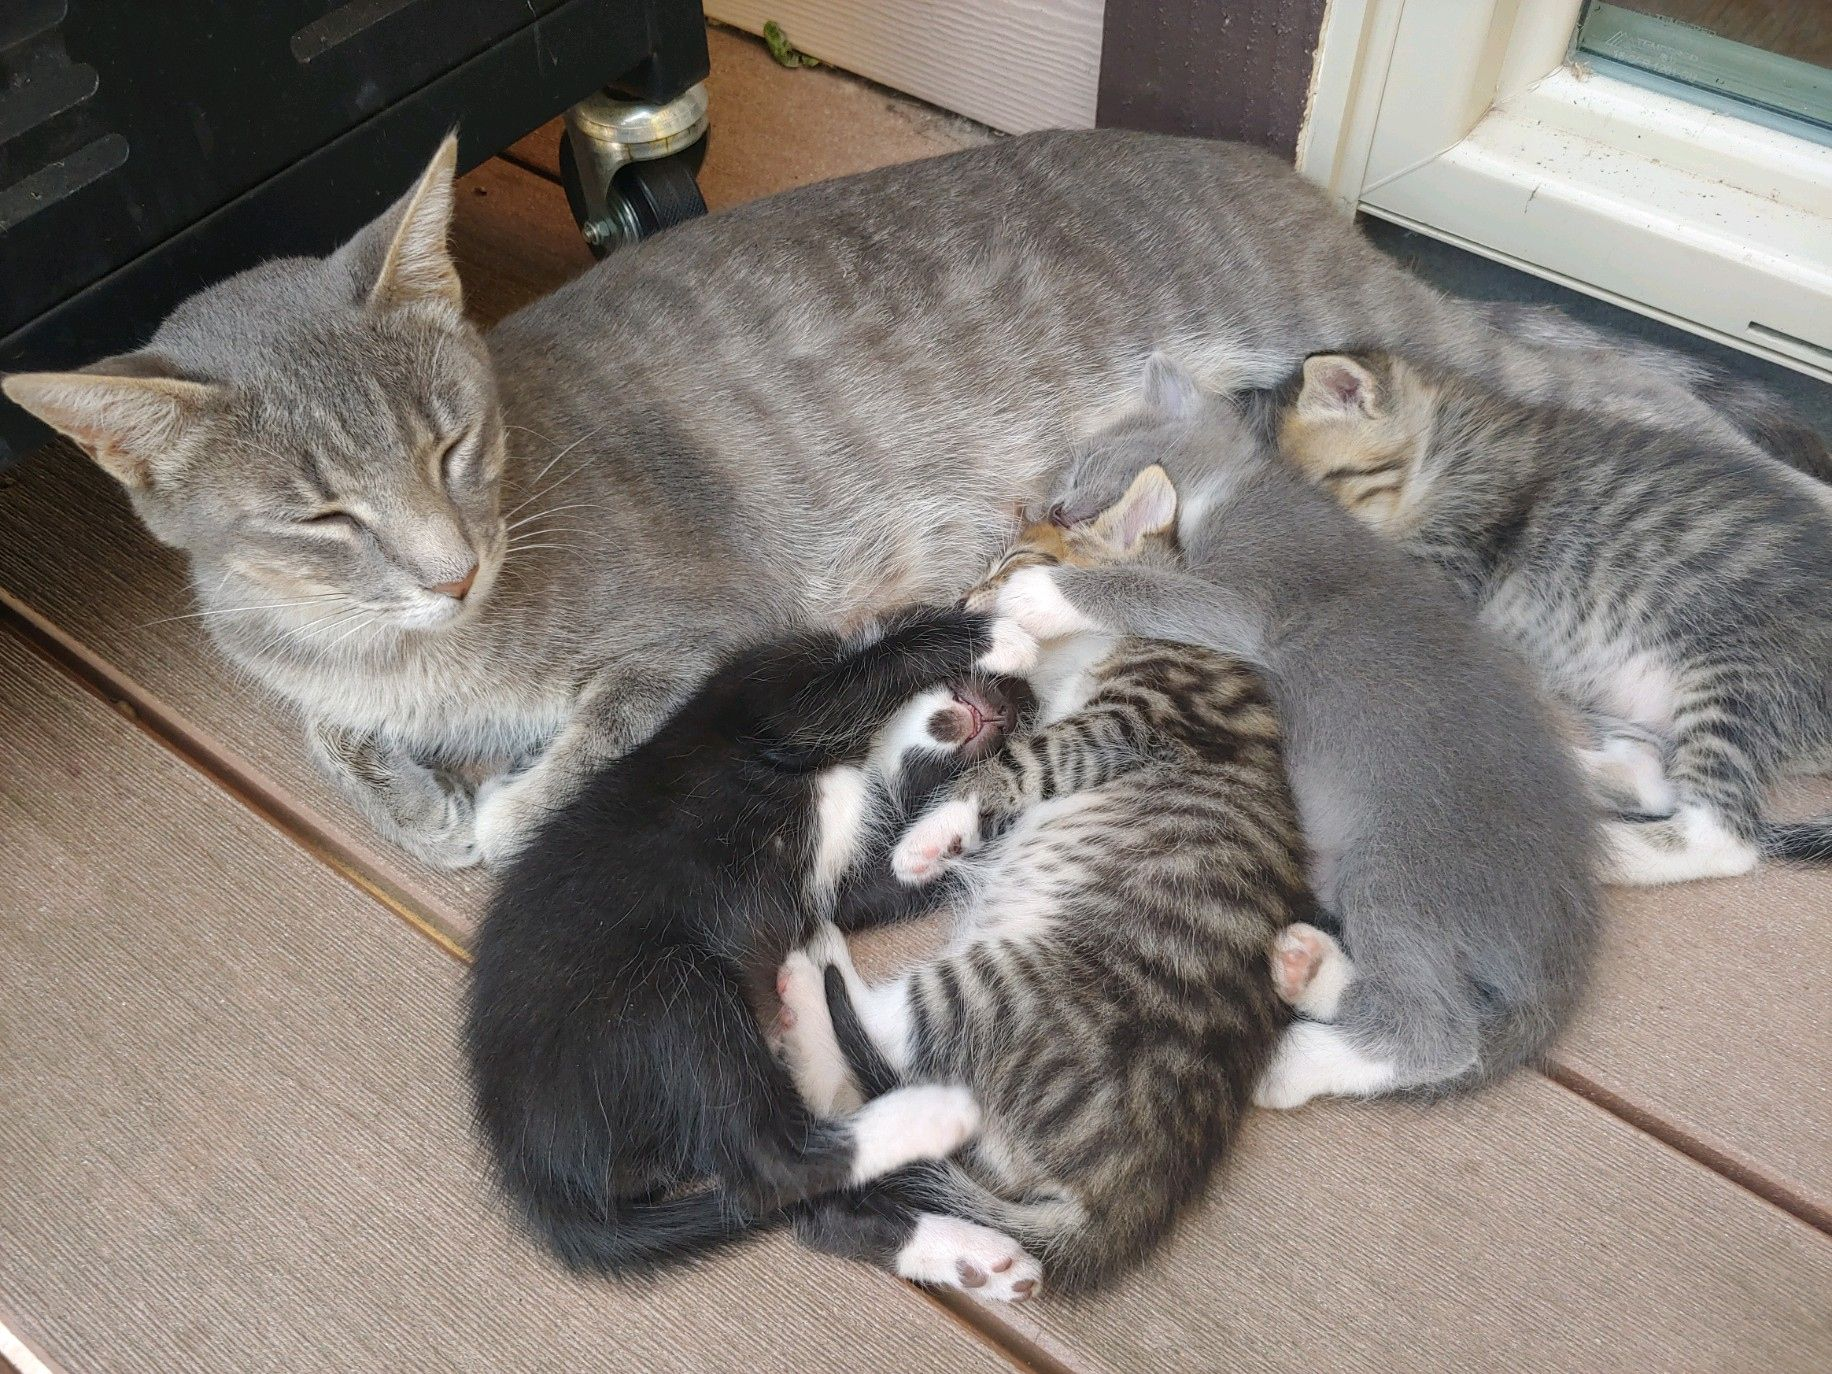 Country Kittens Redhawkrealty Weknowthebackcountry Cadre01109566 Countryliving Country Kitten Kittens Cat Real Estate Sales San Diego Farm Animals